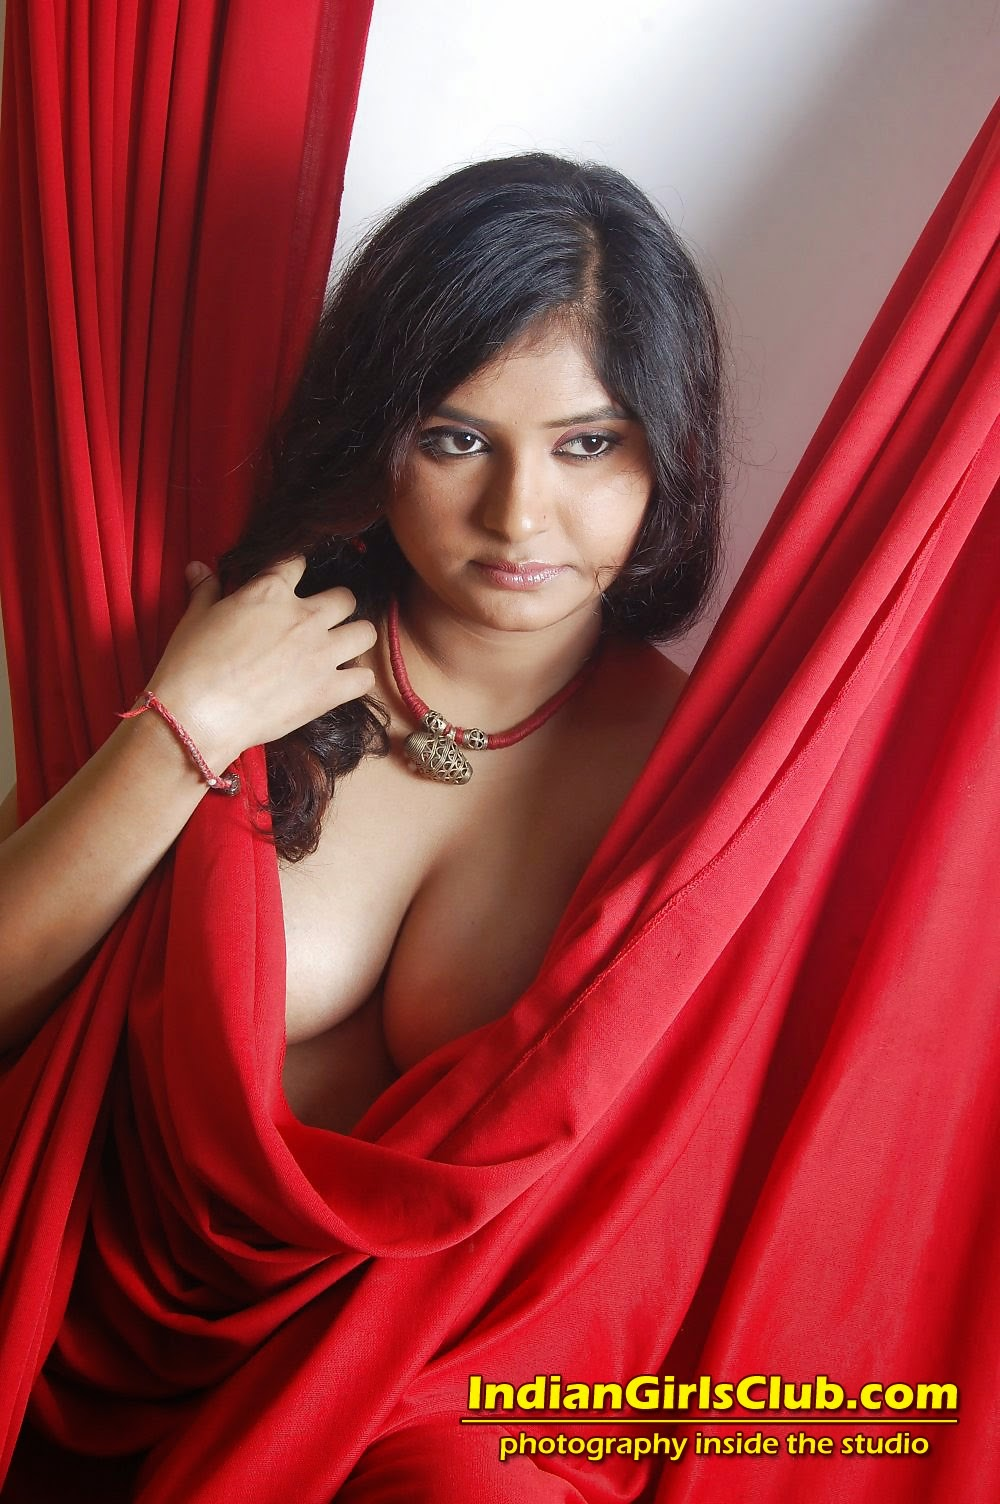 Nude indian models inside studio